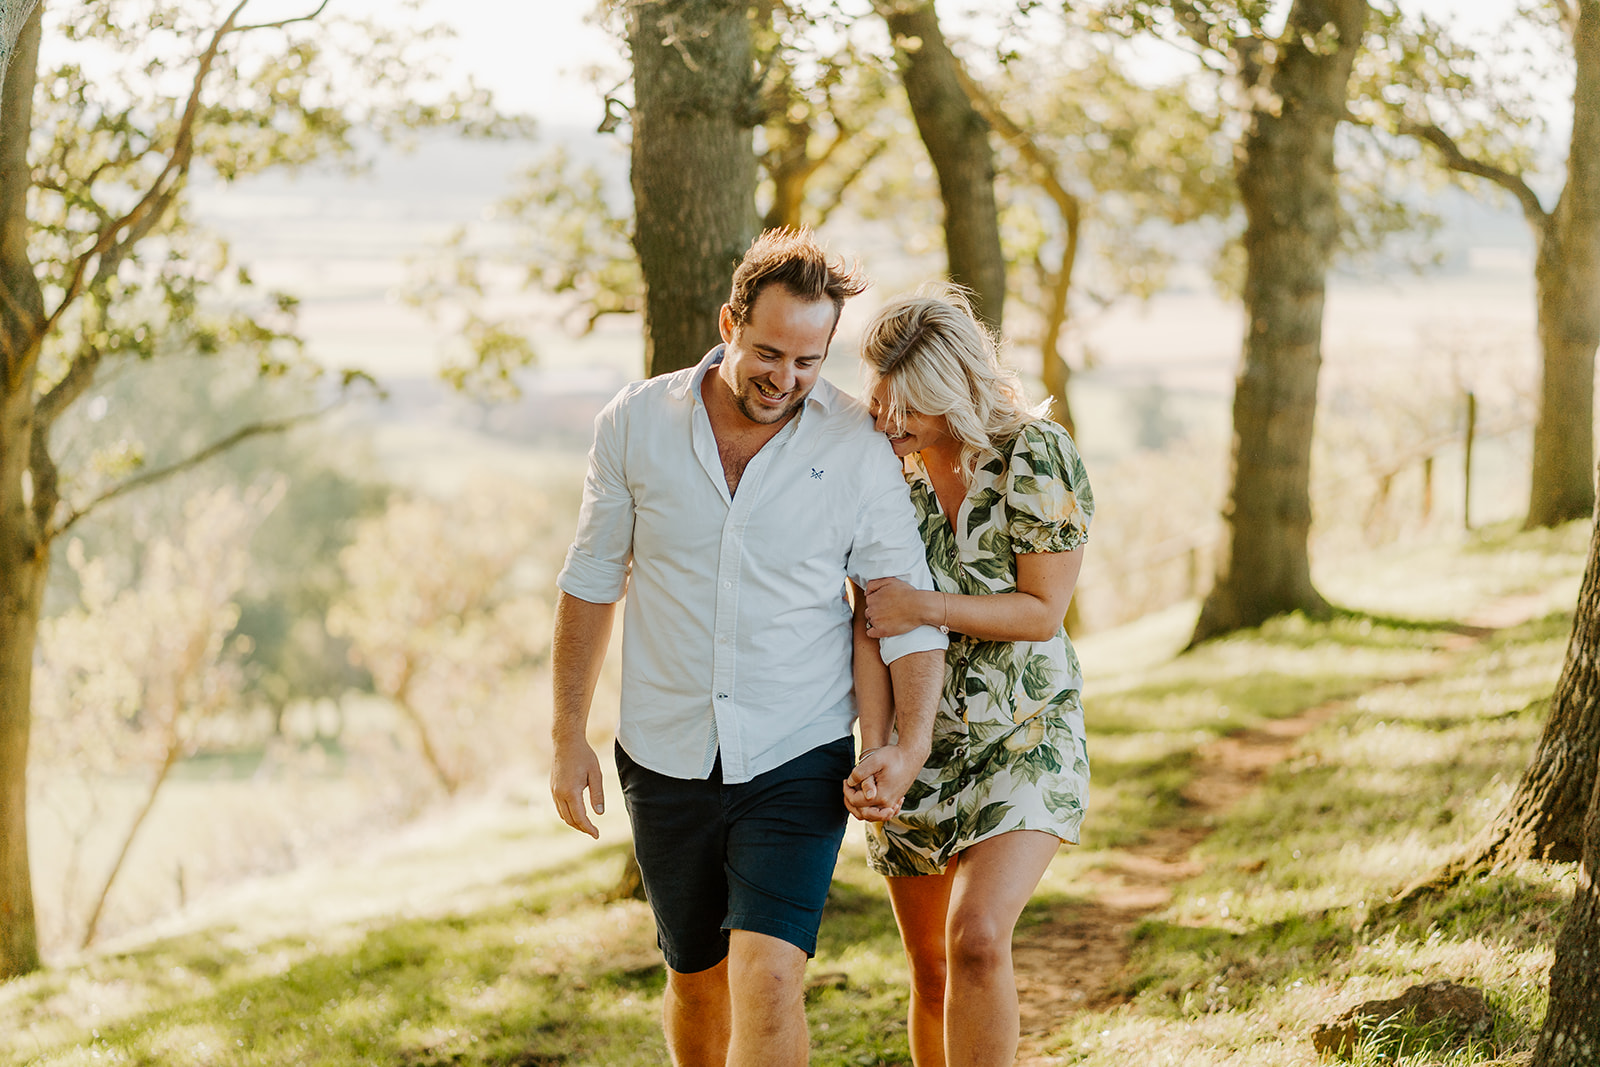 Couples engagement shoot at golden hour in wheat grass fields